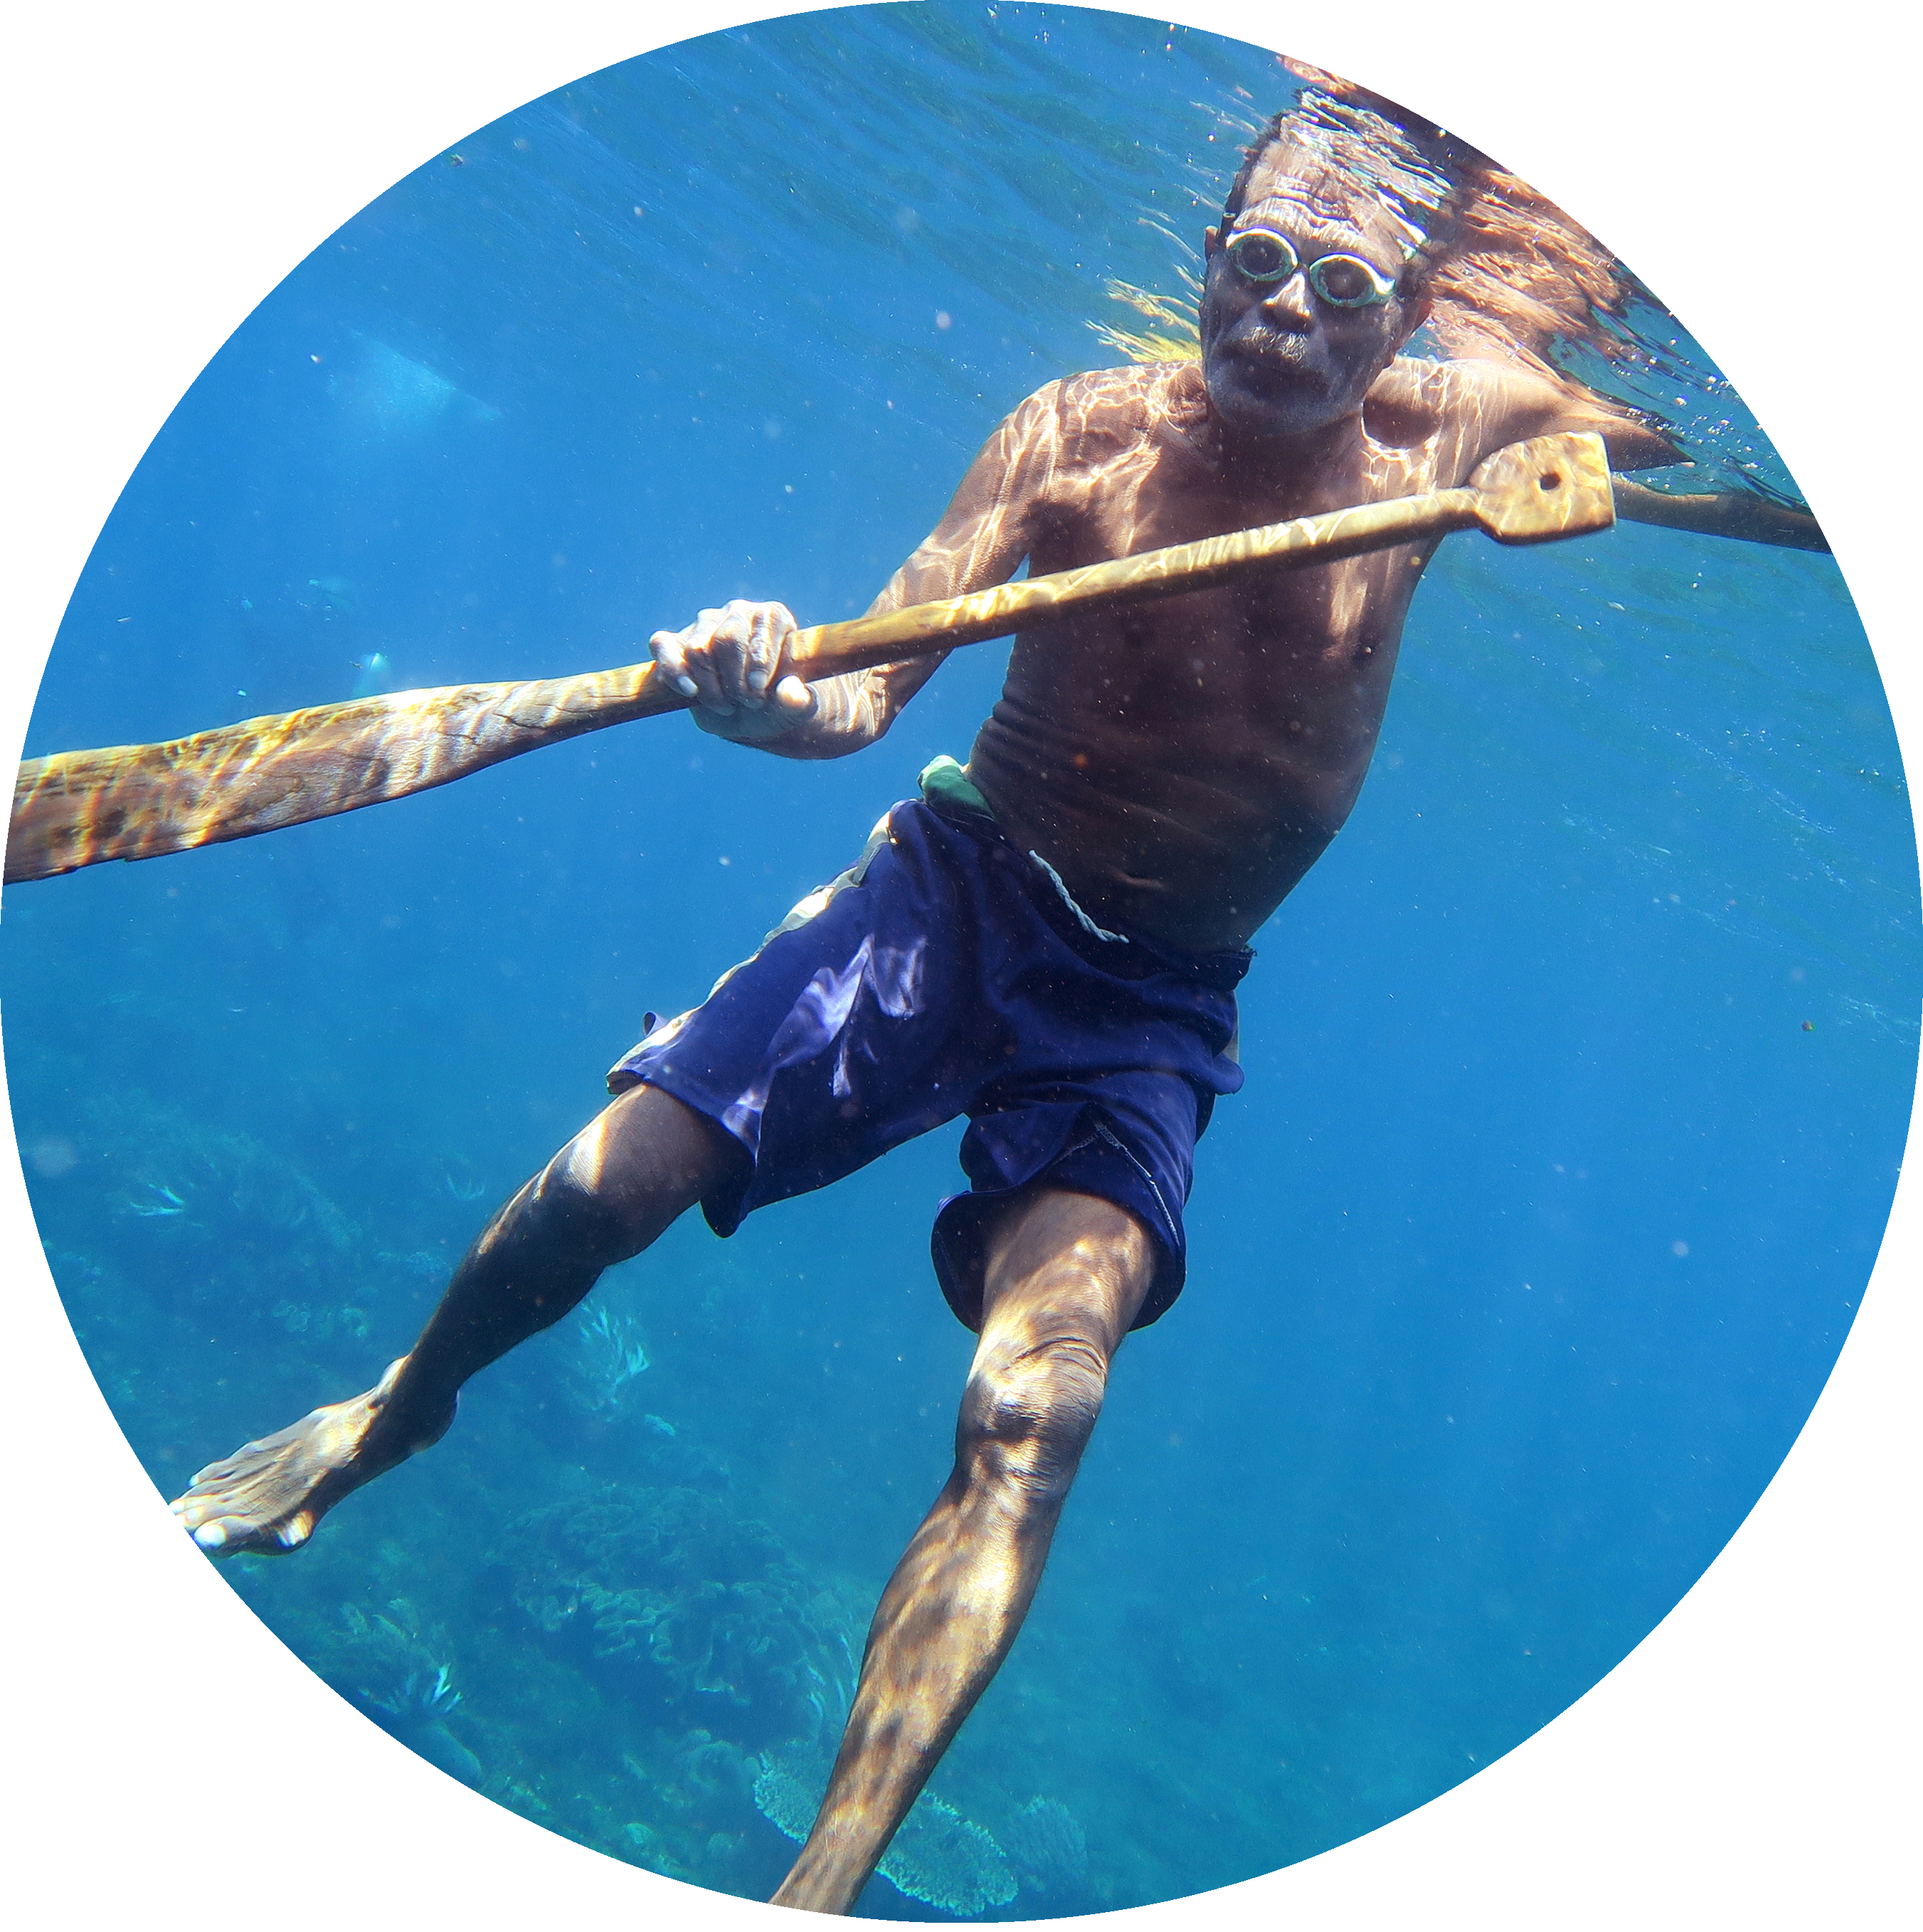 Indonesia Fisherman Underwater Photography Underwater Videography Scuba Diving